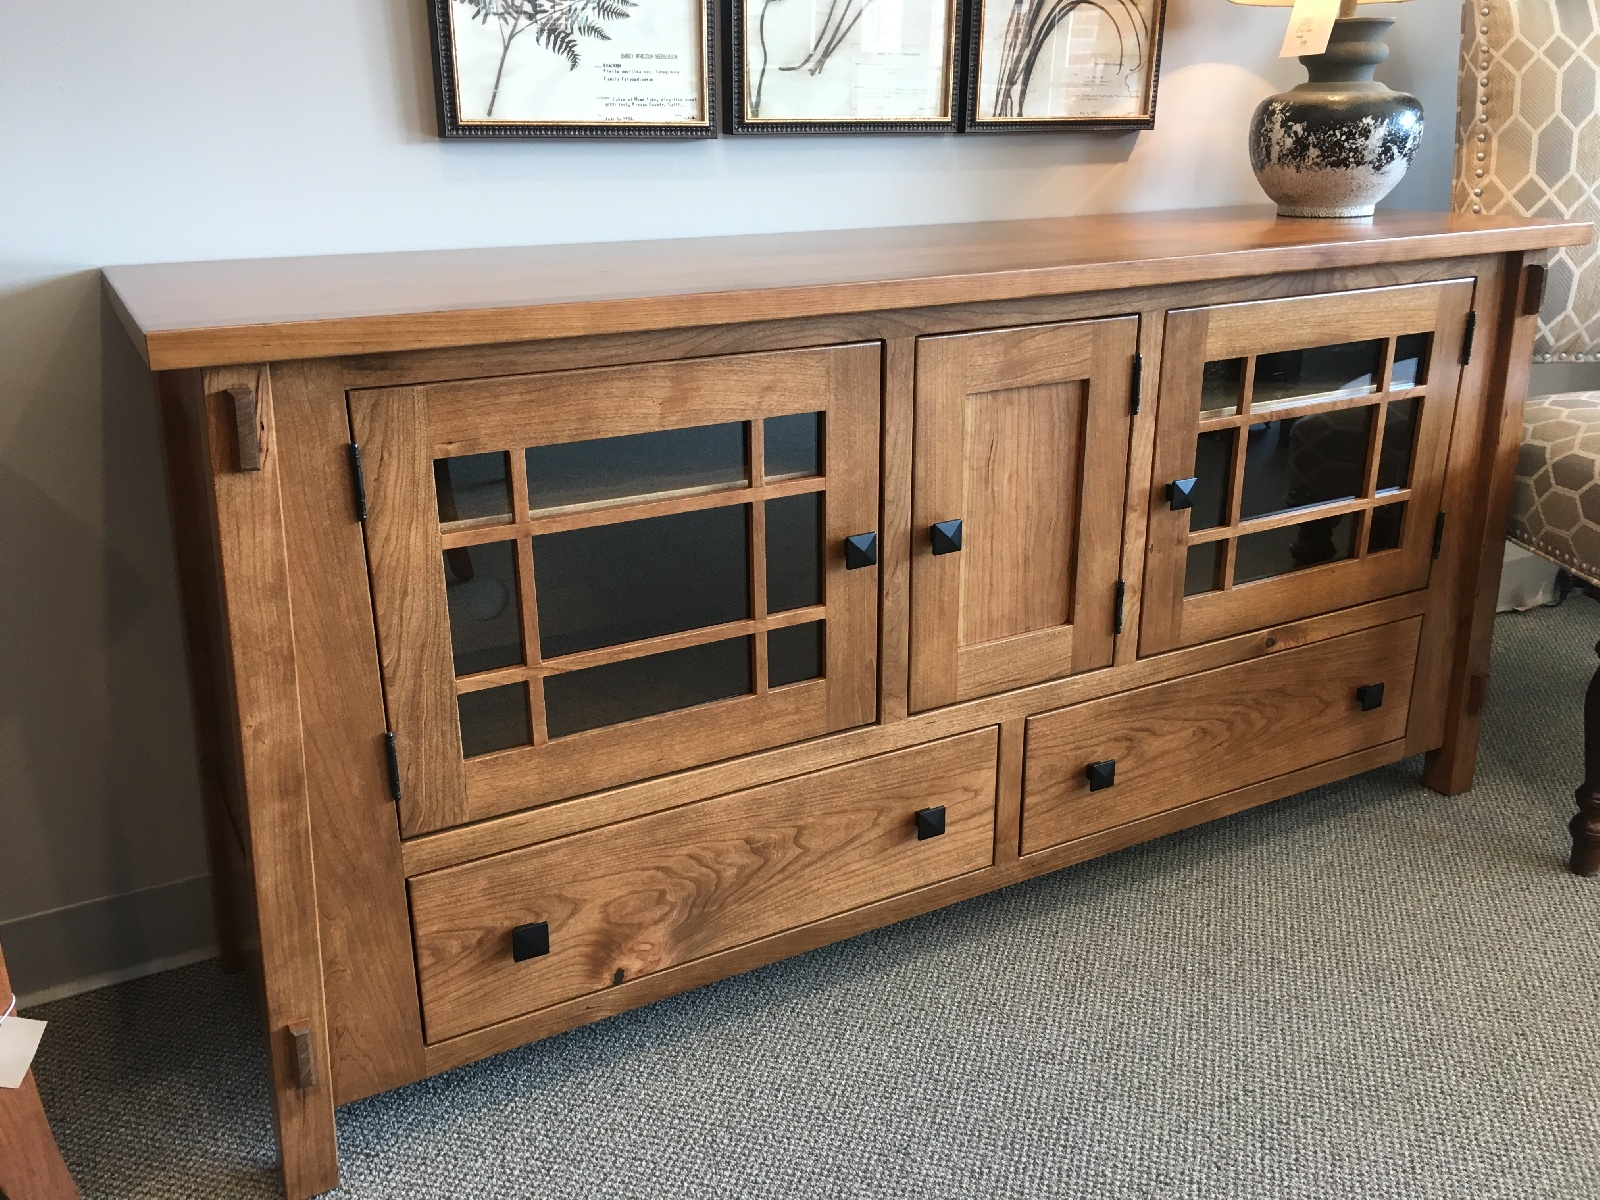 All Of Our Furniture Is Handcrafted By The Amish For Lasting Beauty Made To Order